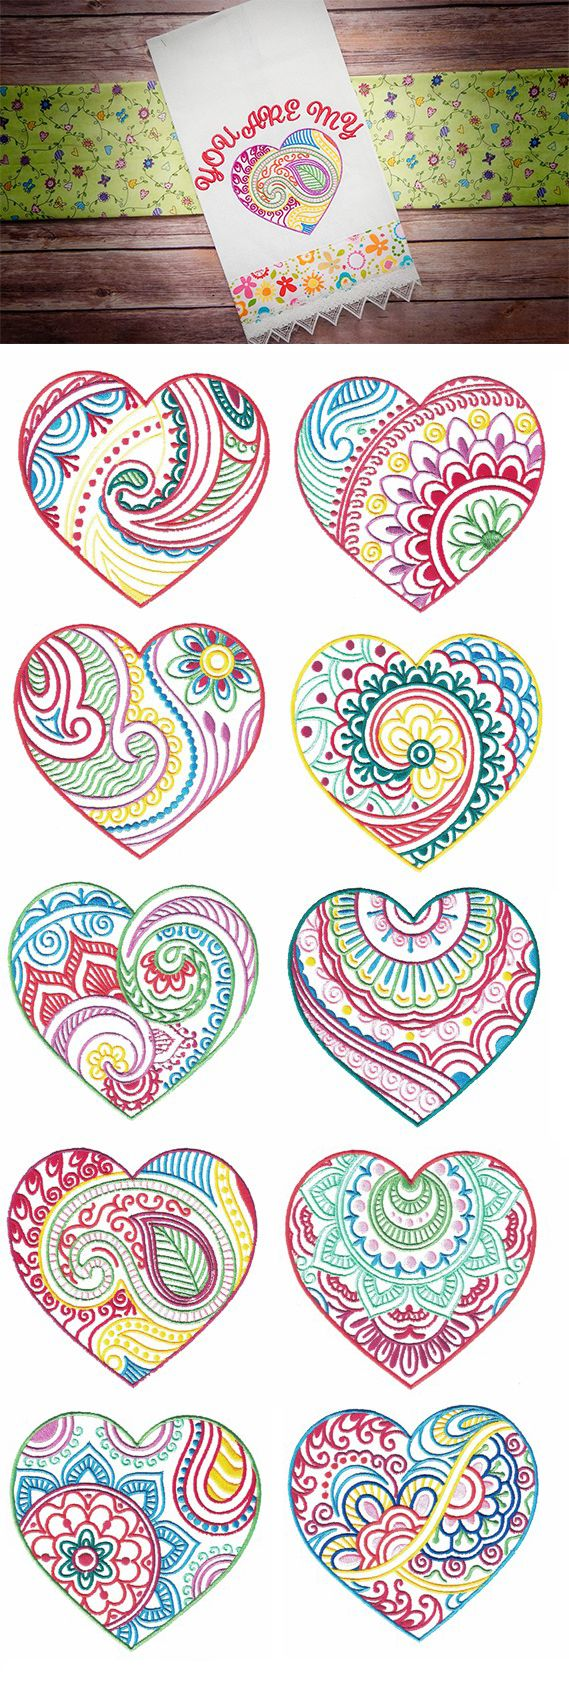 Available in a range of different colour designs instant downloadable - Mehndi Hearts Design Set Available For Instant Download At Designsbyjuju Com